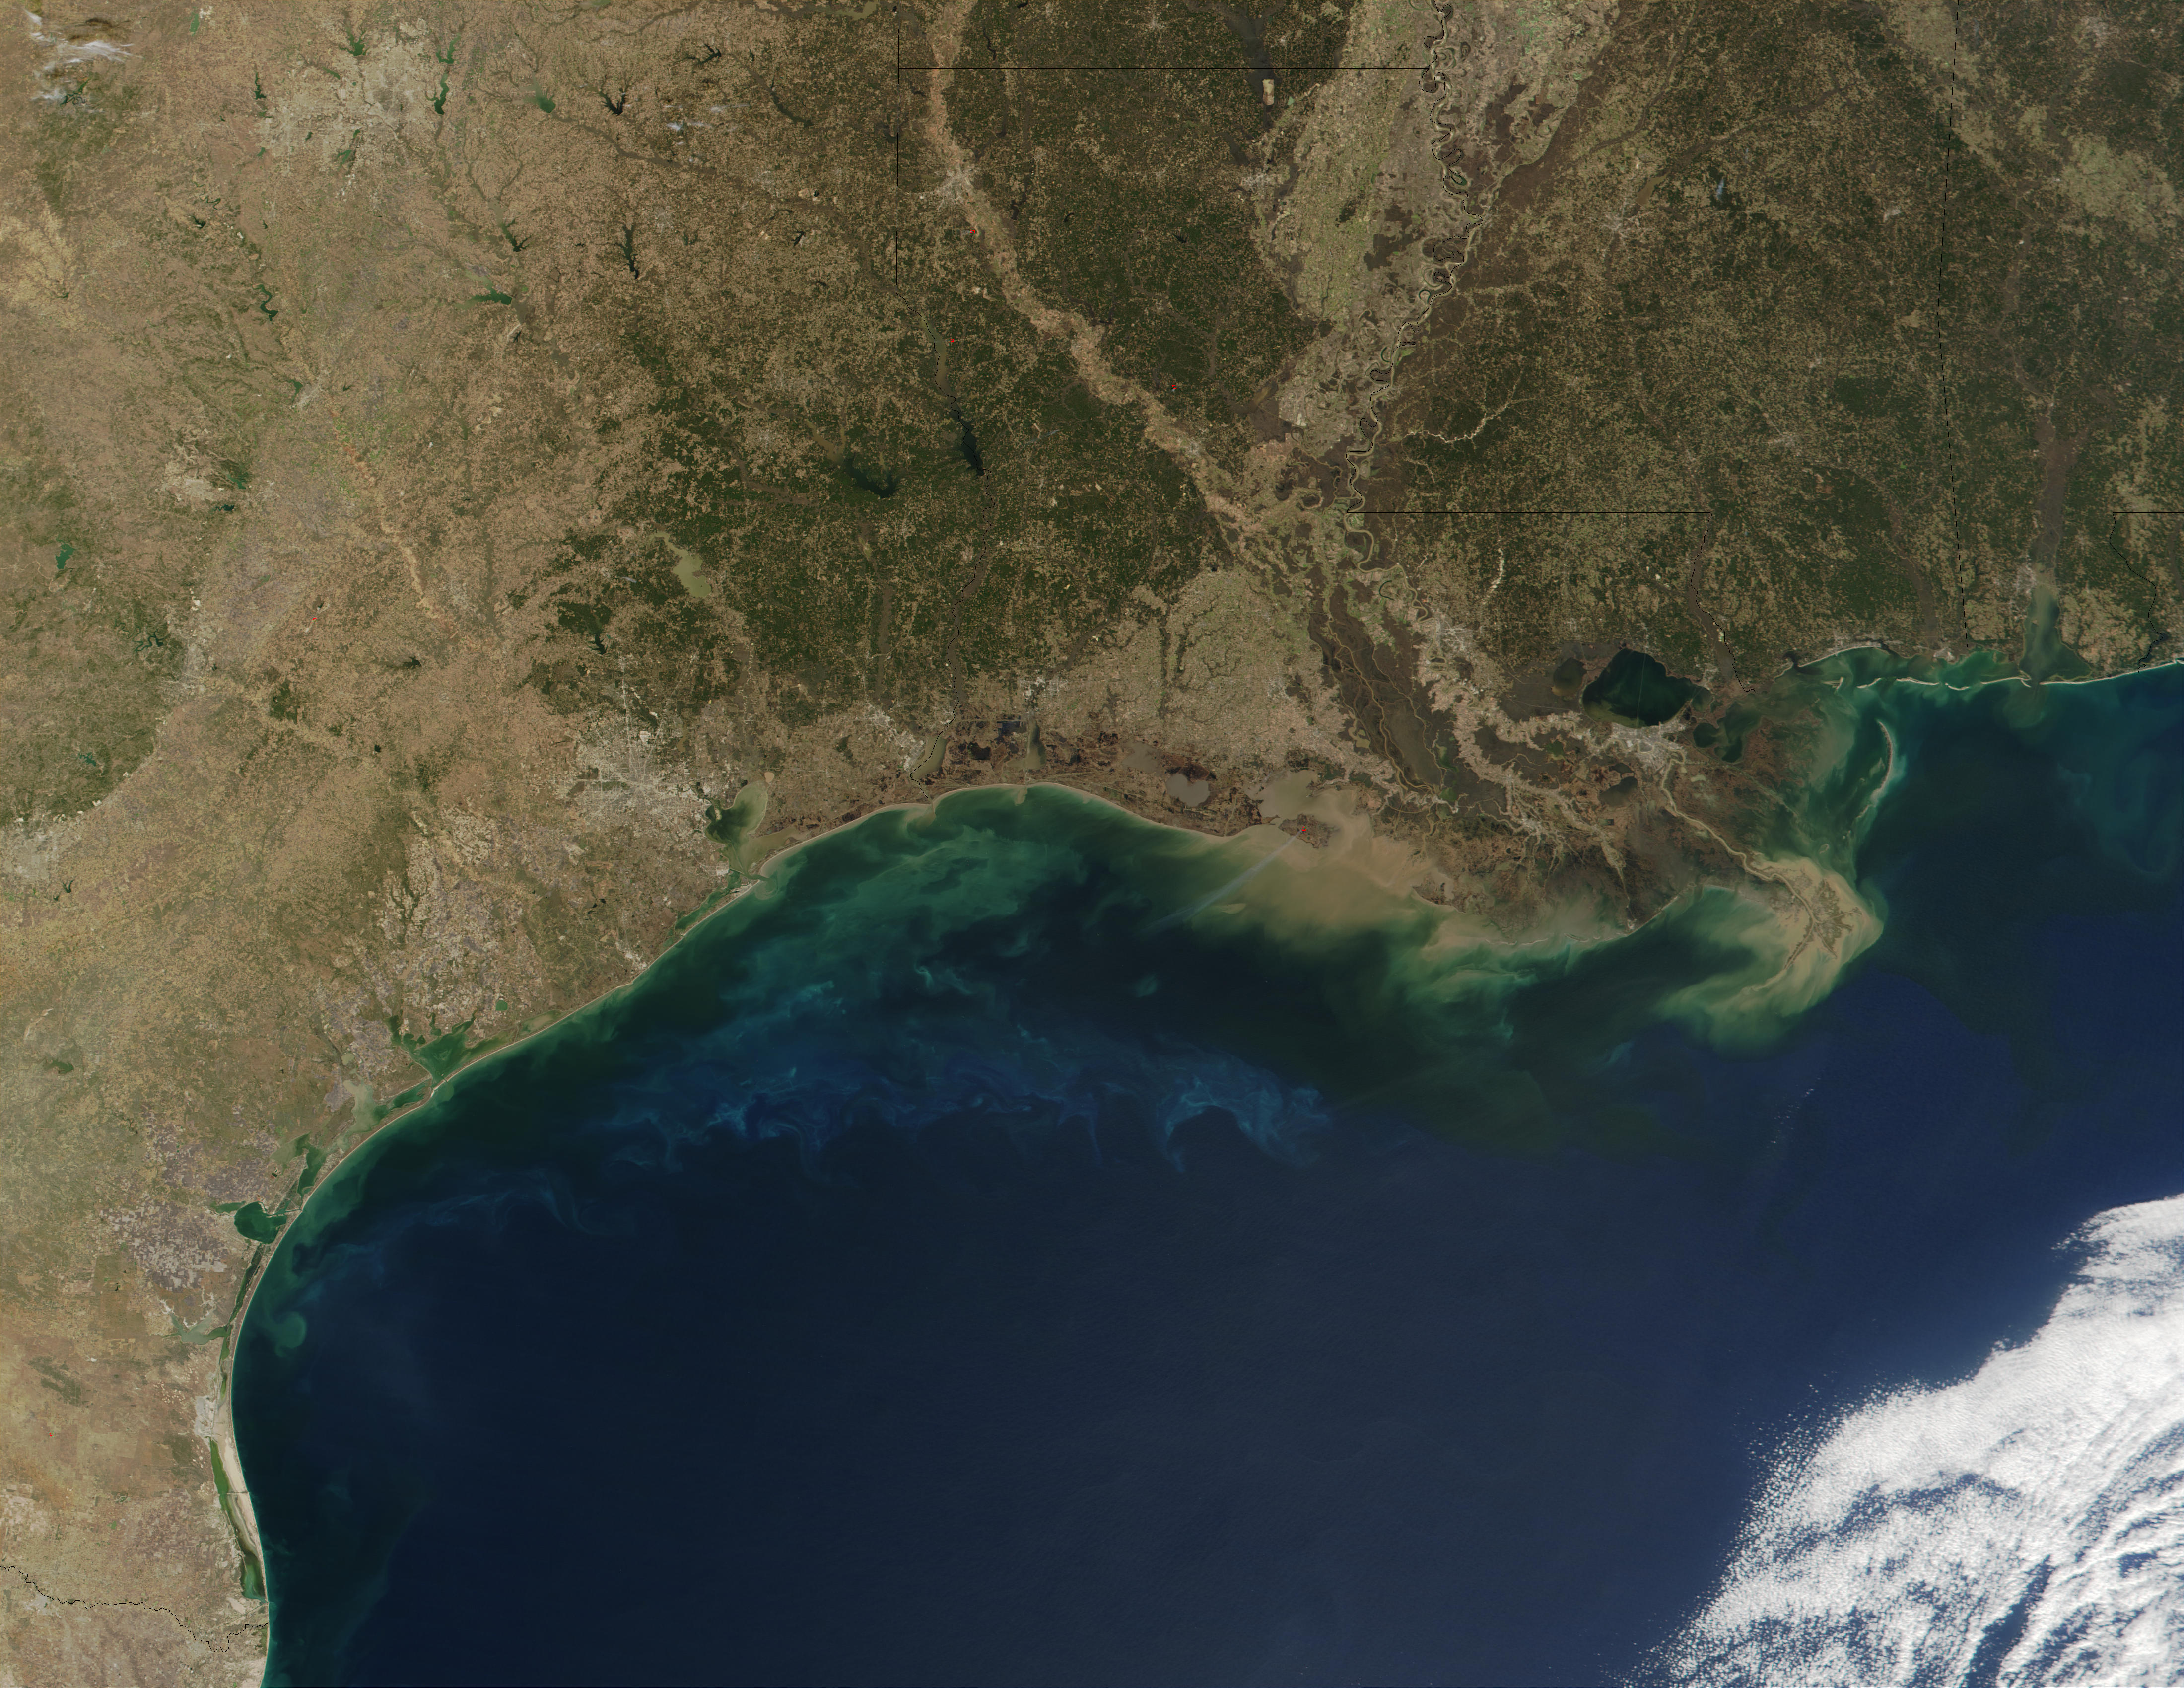 Phytoplankton and sediments in Gulf of Mexico